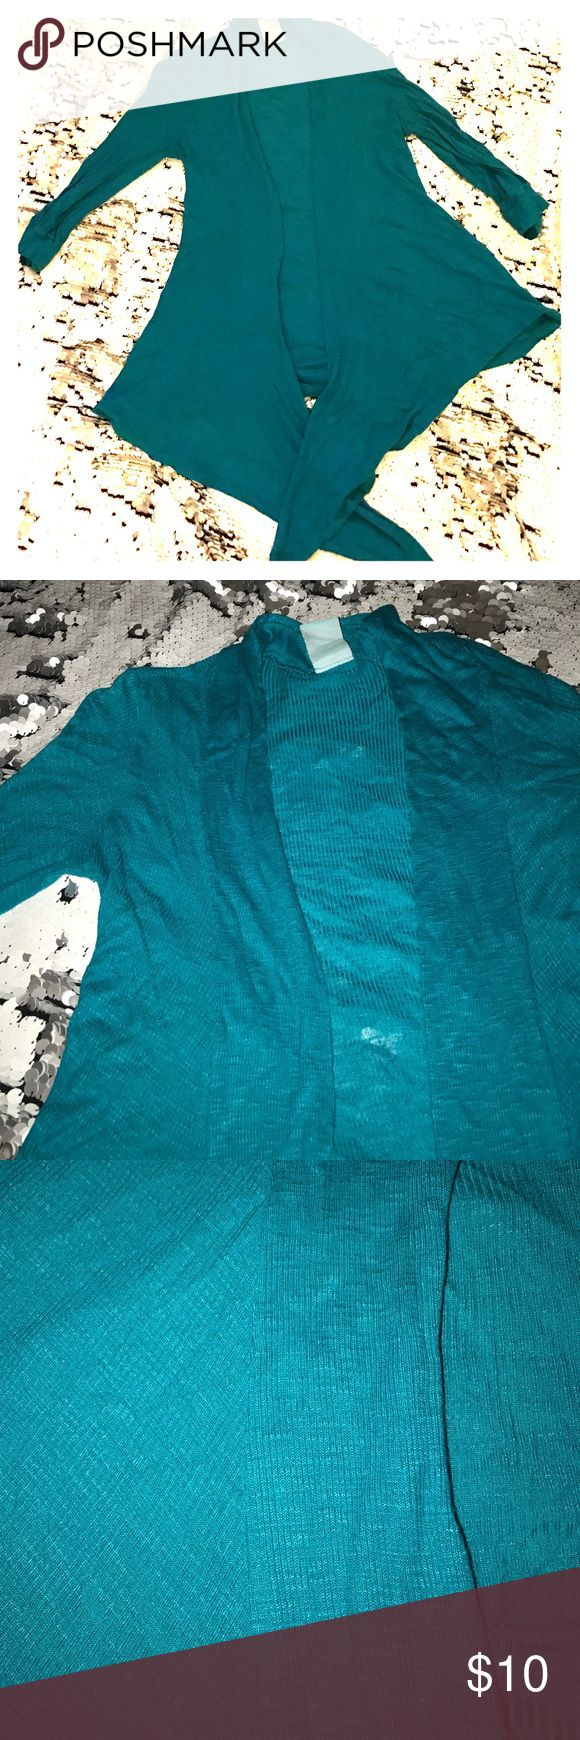 teal cardigan Worn three times. The color is bright in person. Really soft and pretty h.i.p. Sweaters Cardigans